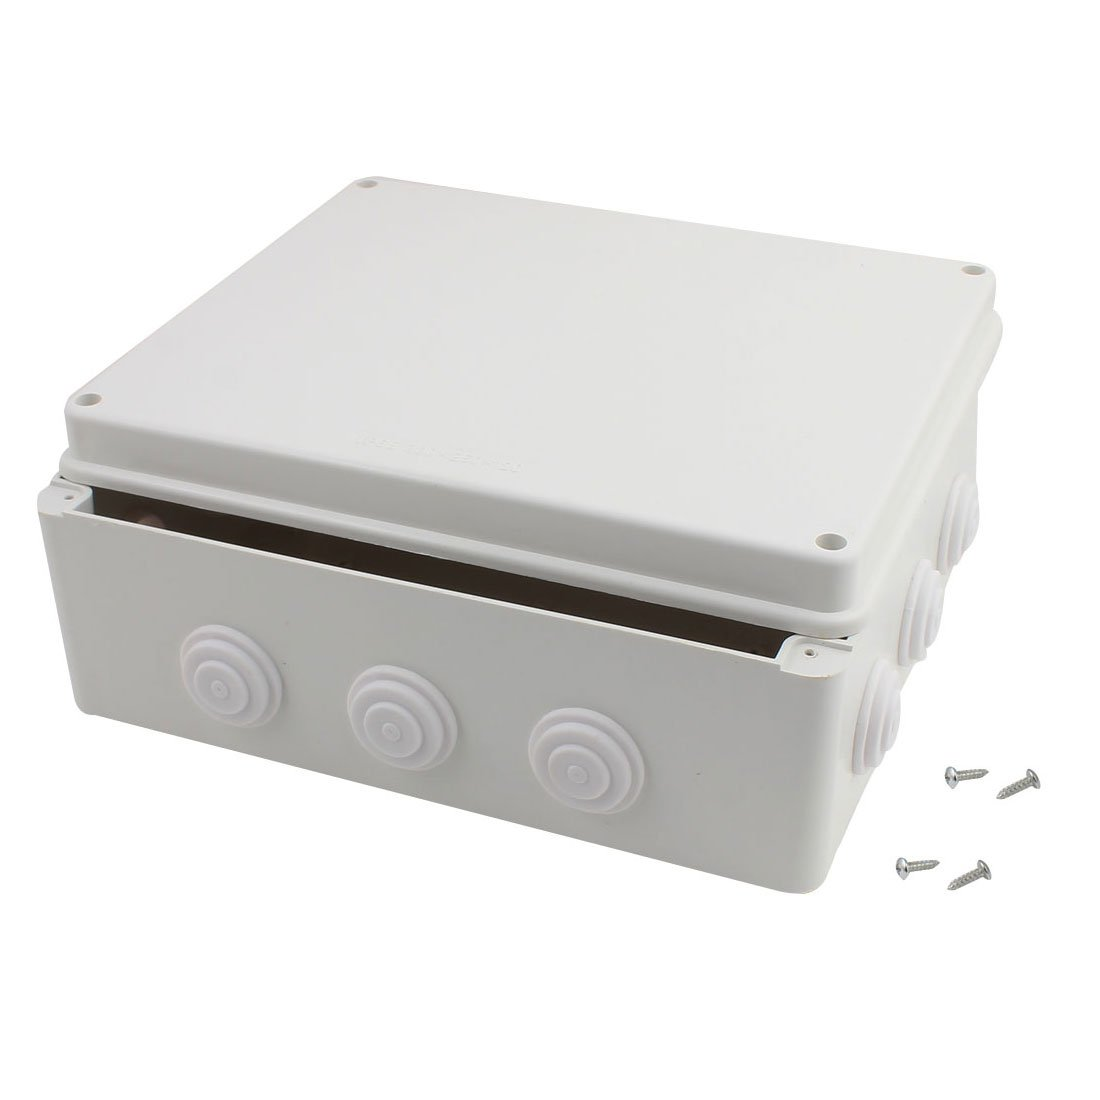 Awclub ABS Plastic Dustproof Waterproof IP65 Junction Box Universal Electrical Project Enclosure White 12x10x4.8 300mmx250mmx120mm